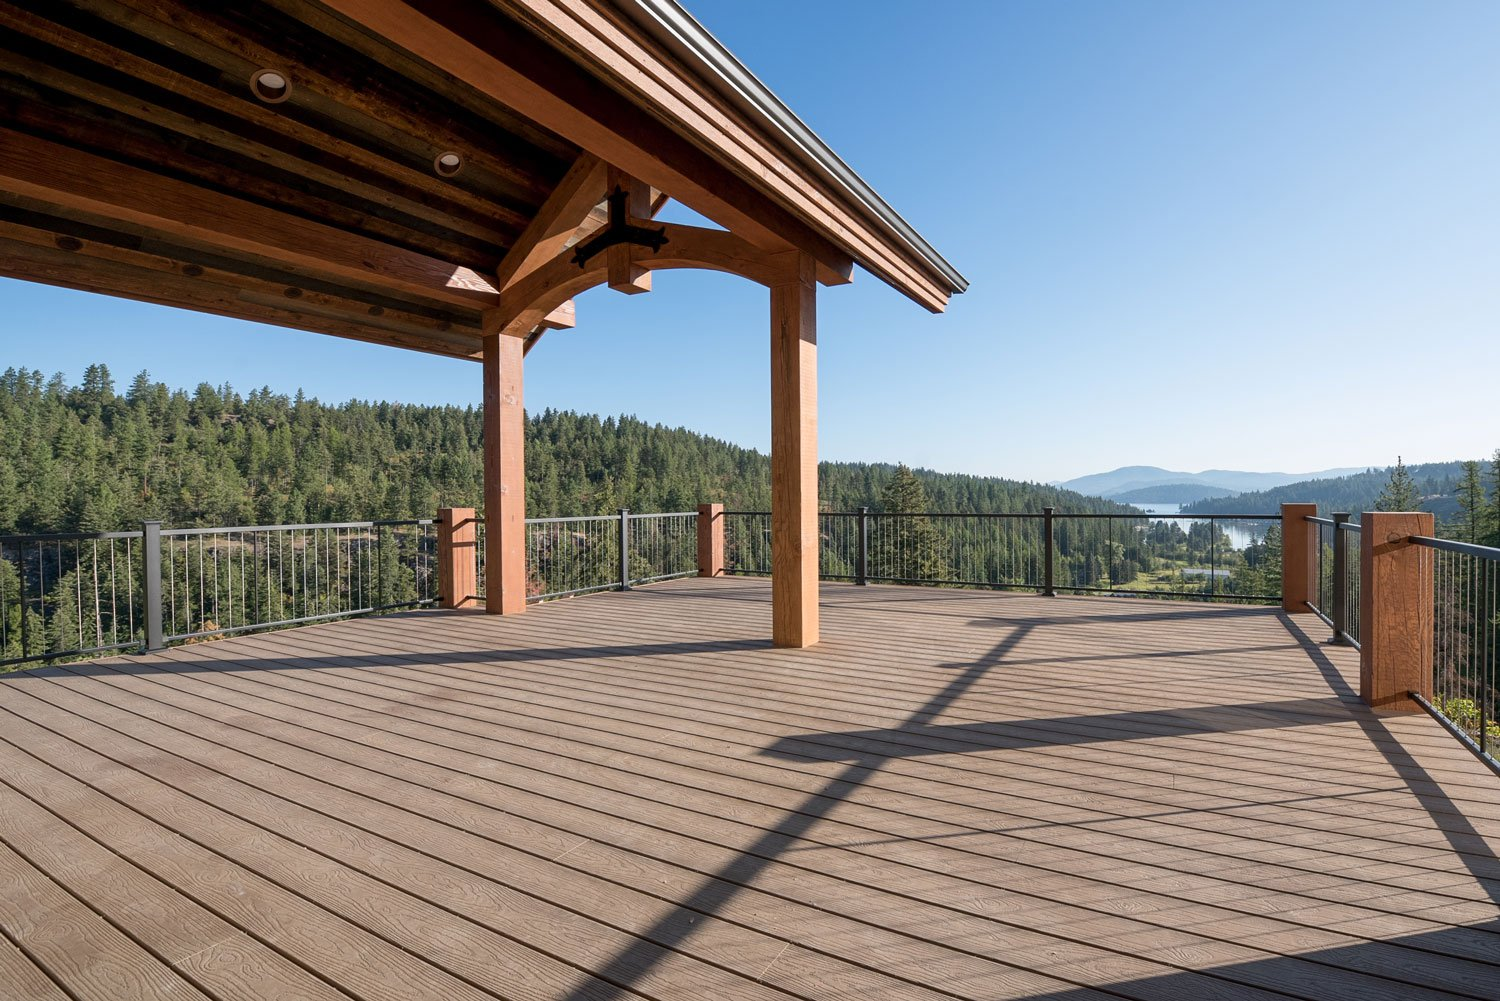 kidd-creek---deck-and-view